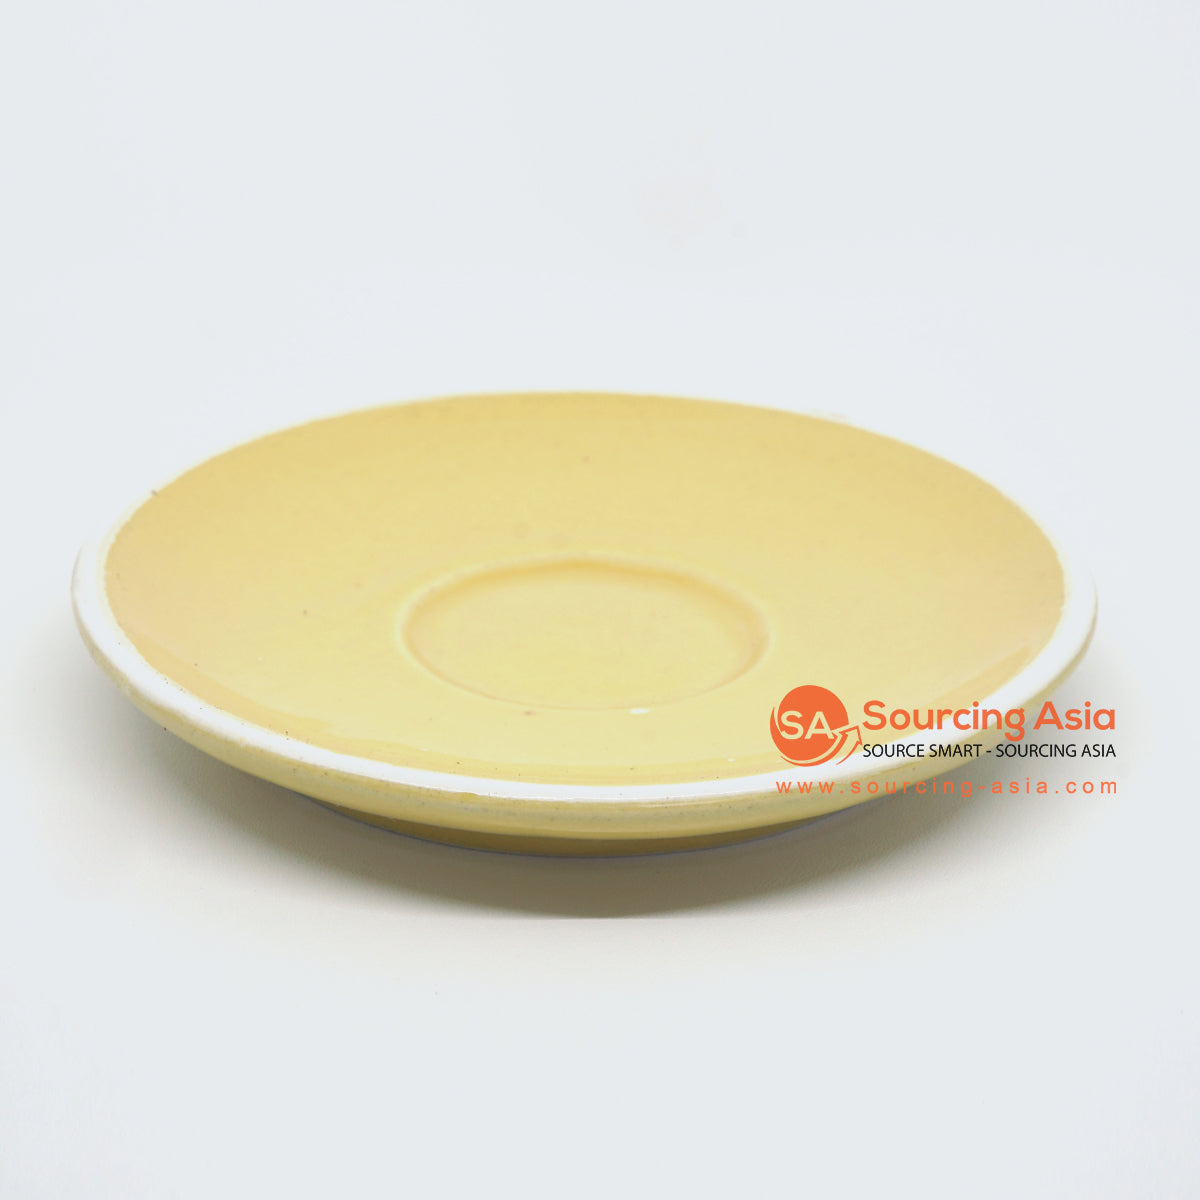 PNJ067 YELLOW AND WHITE EDGES HANDMADE CERAMIC SAUCER